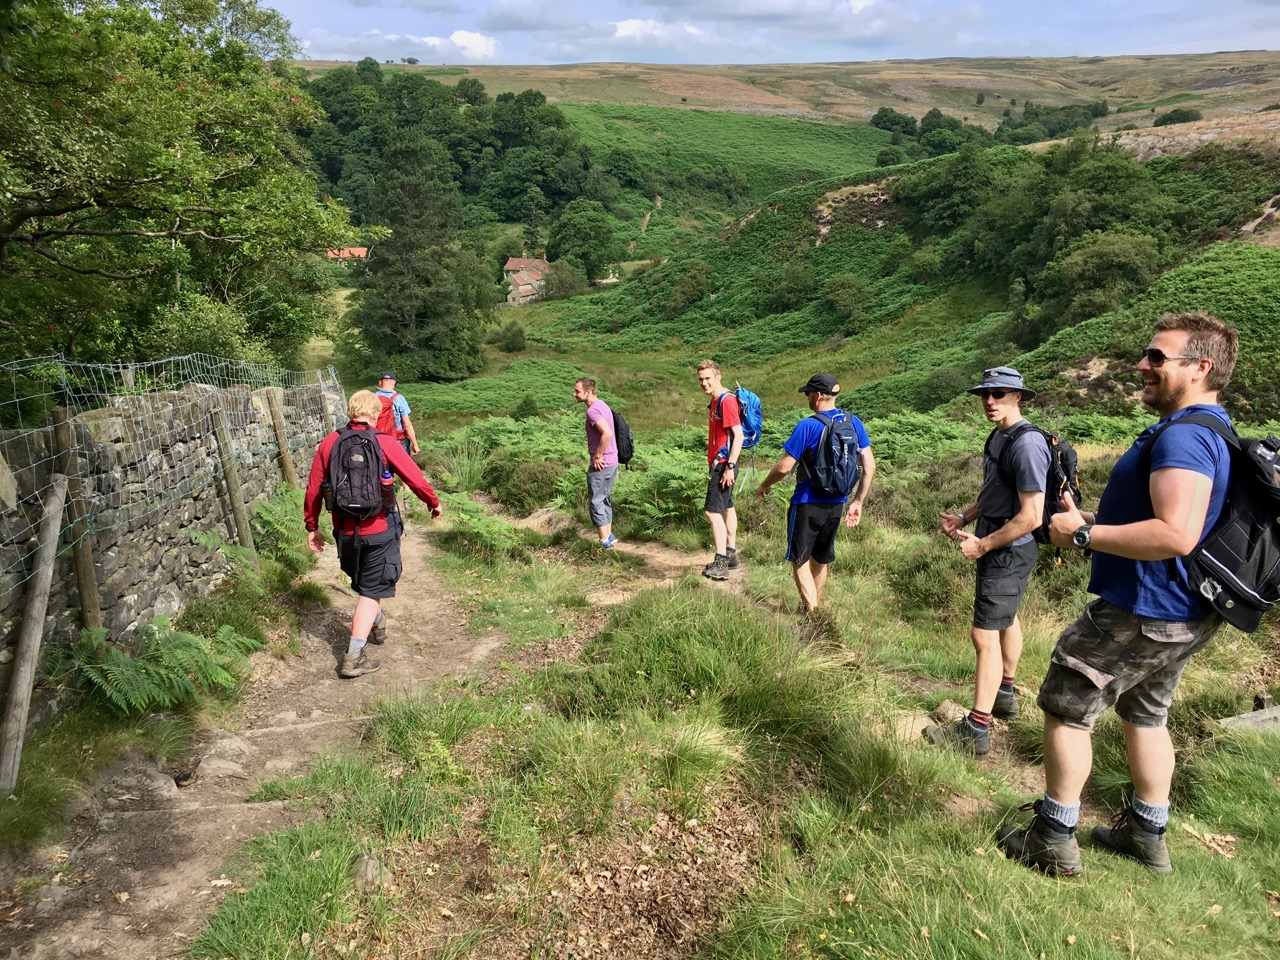 An OutdoorLads group hiking across moorland